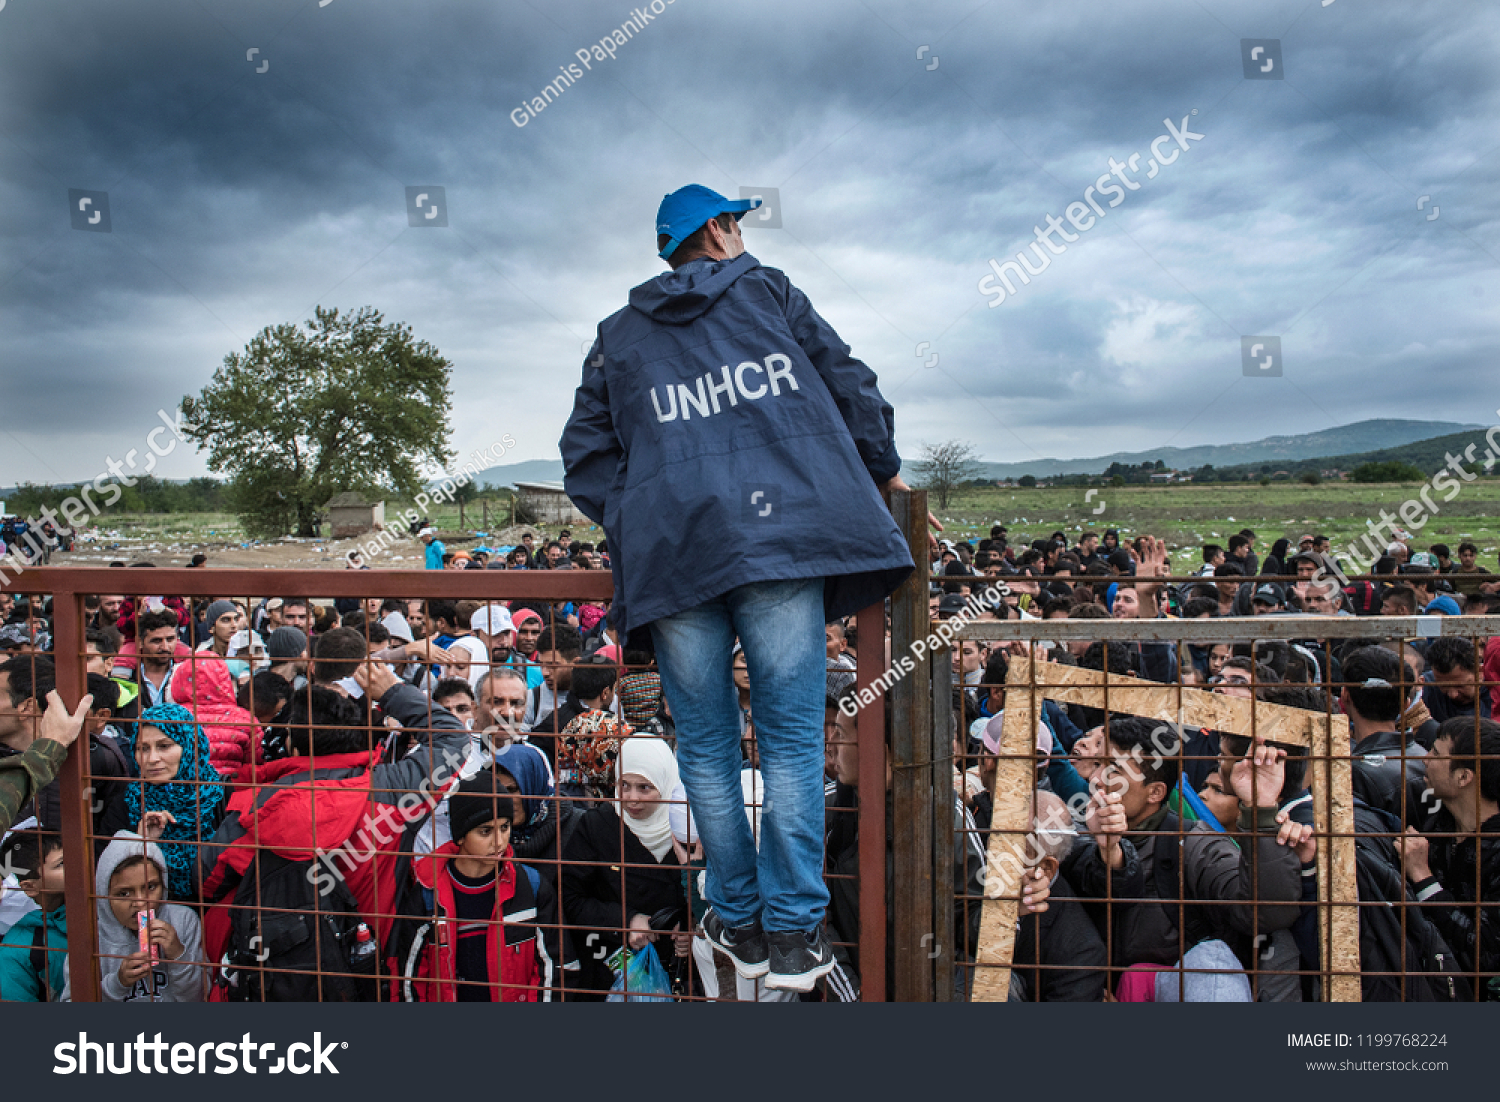 stock photo gevjelija macedonia september a unhcr employee talks to refugees as they wait during a 1199768224